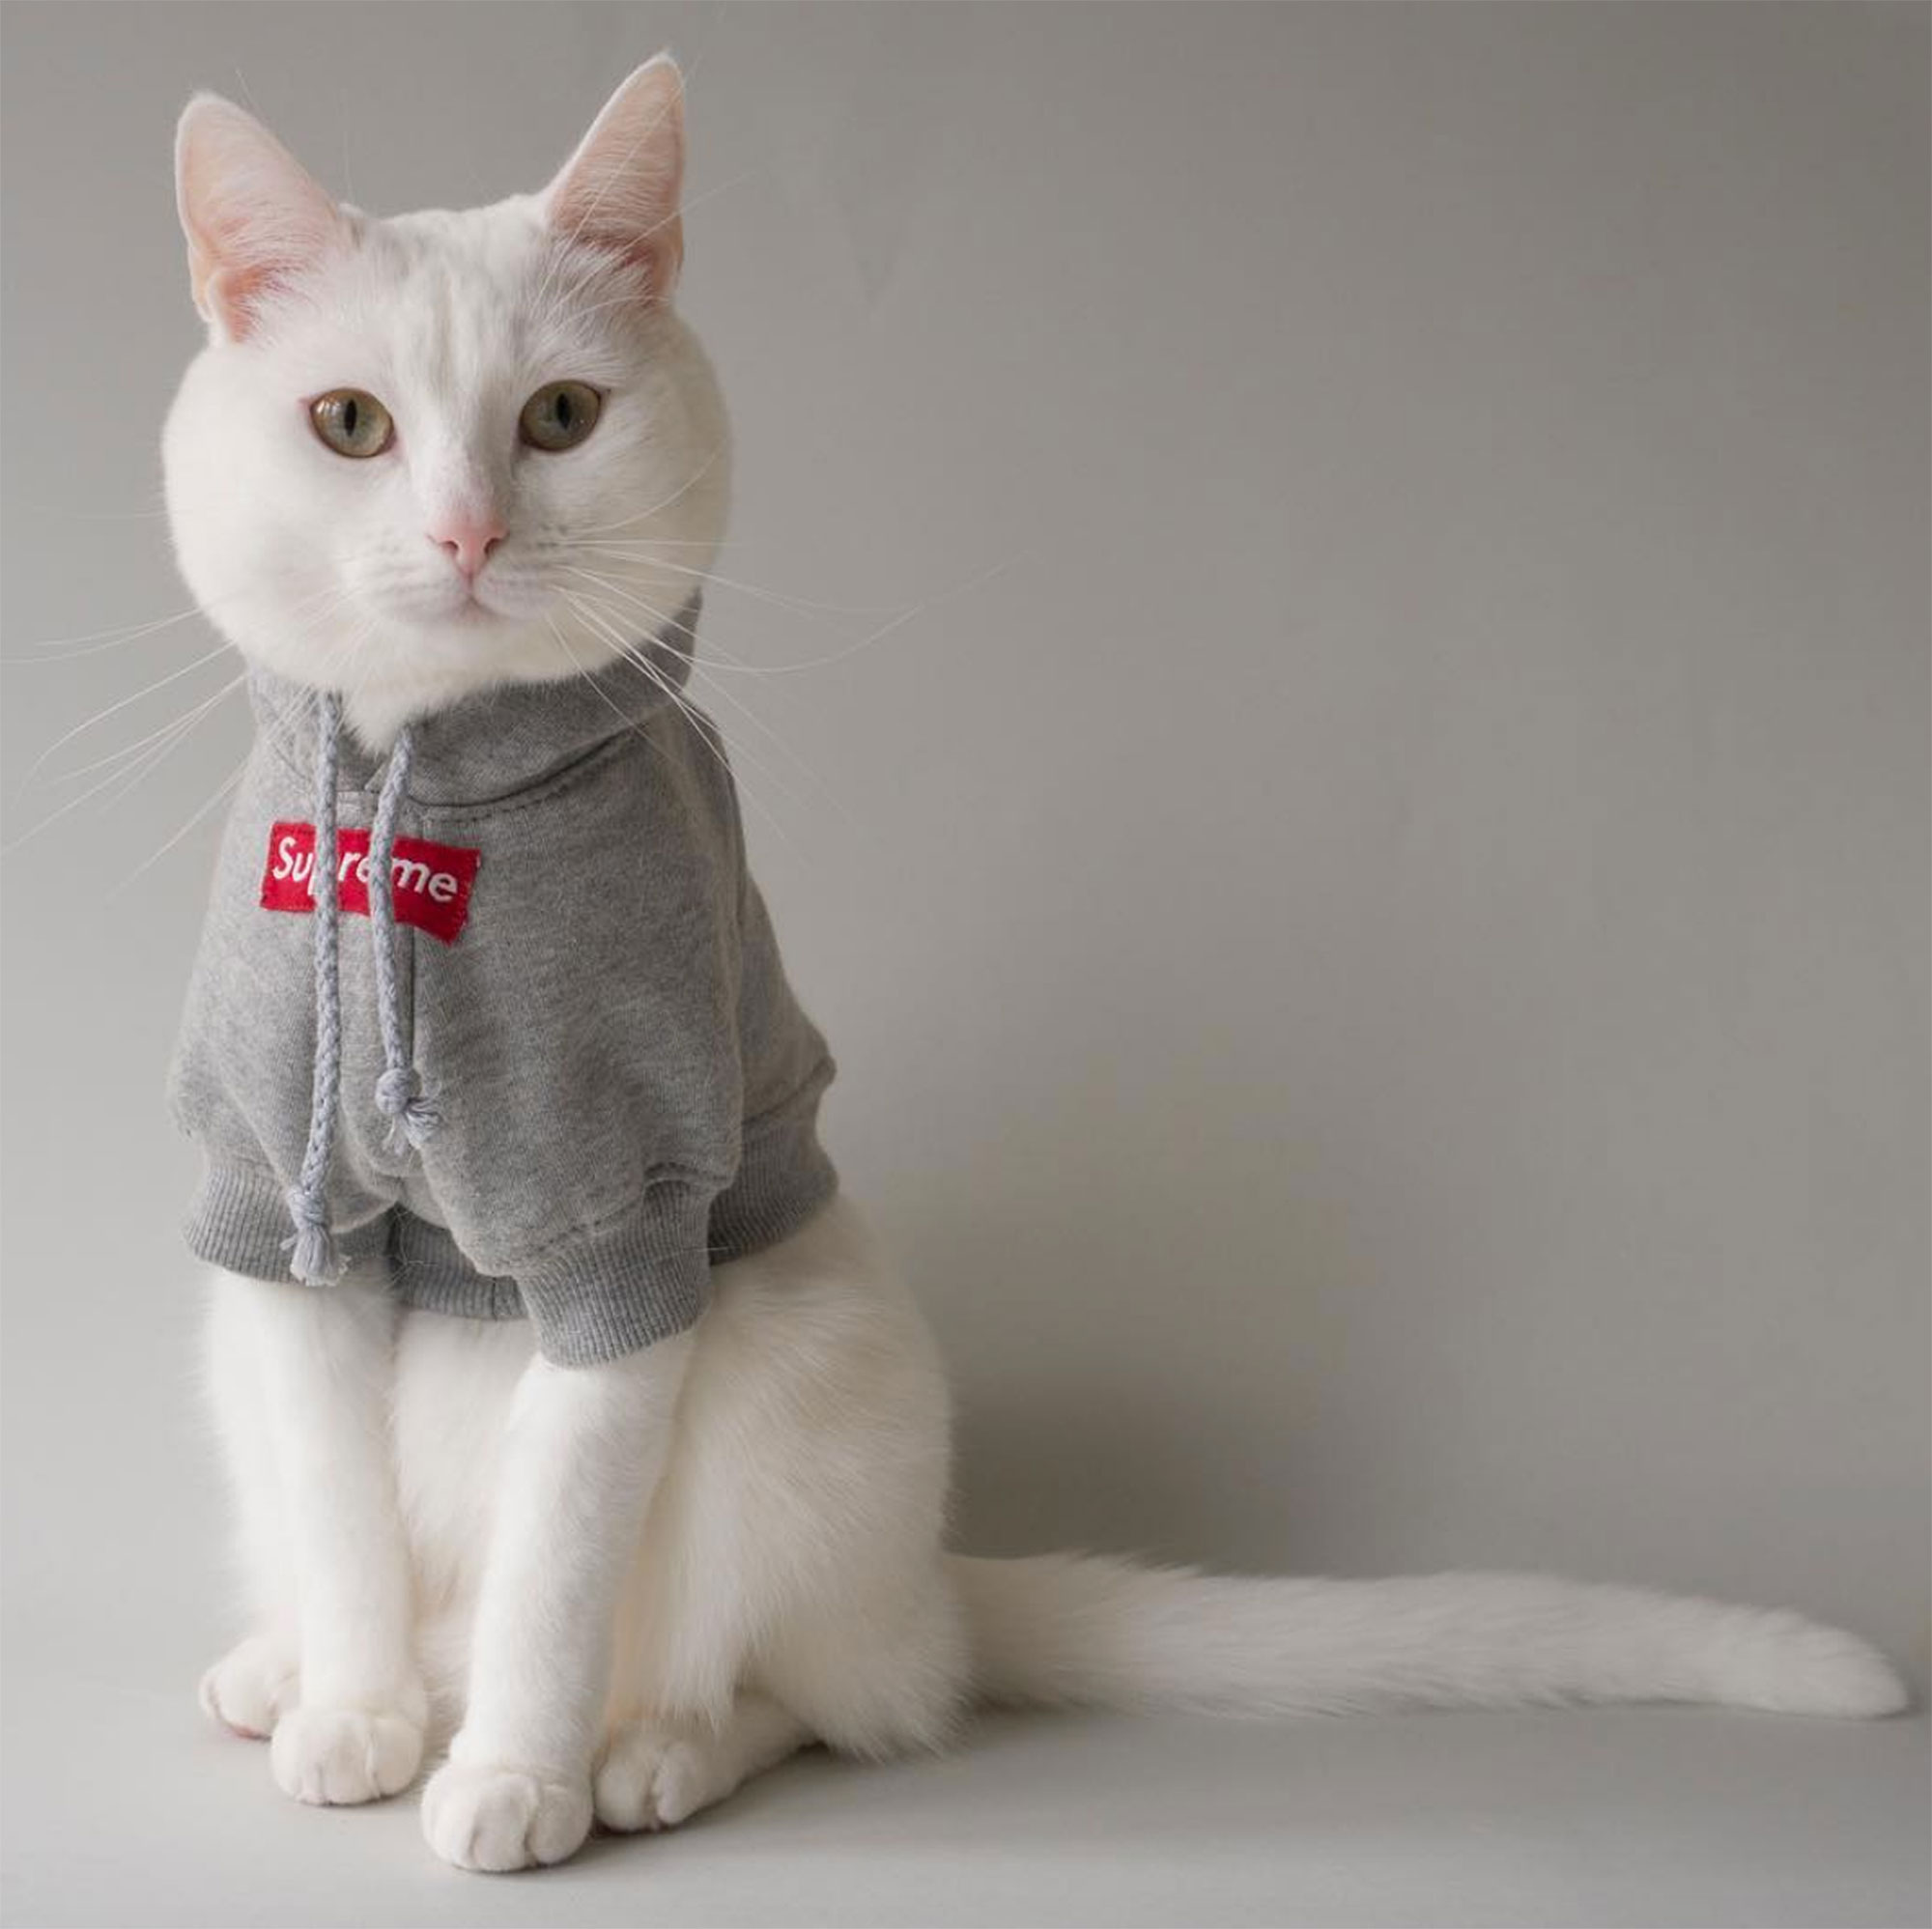 Zappa the Instagram Model Cat Has a Closet of Tiny High Fashion ...